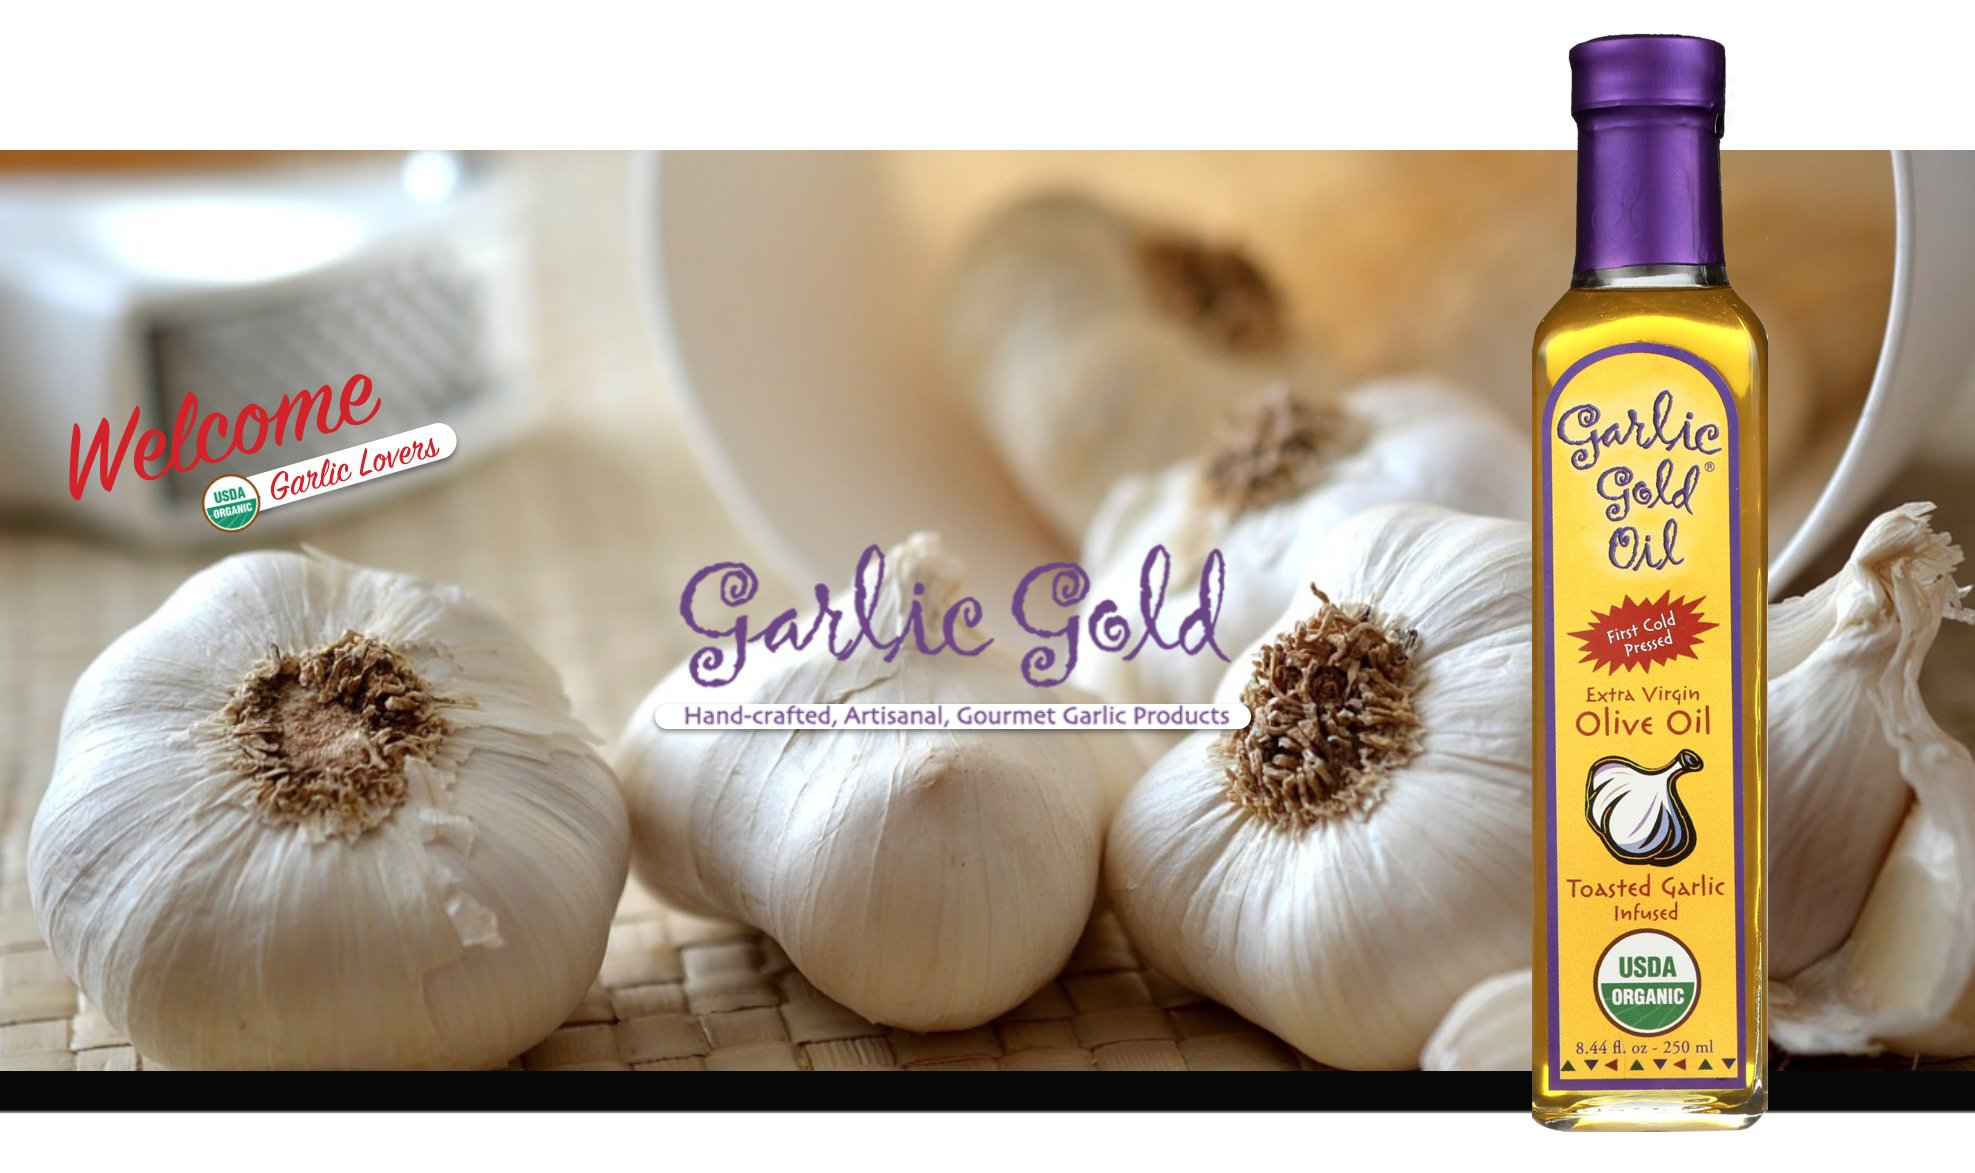 USDA Certified Organic Extra Virgin Olive Oil - Infused with toasted Garlic, Low FODMAP, by Garlic Gold (Pack of 6) by Garlic Gold (Image #7)